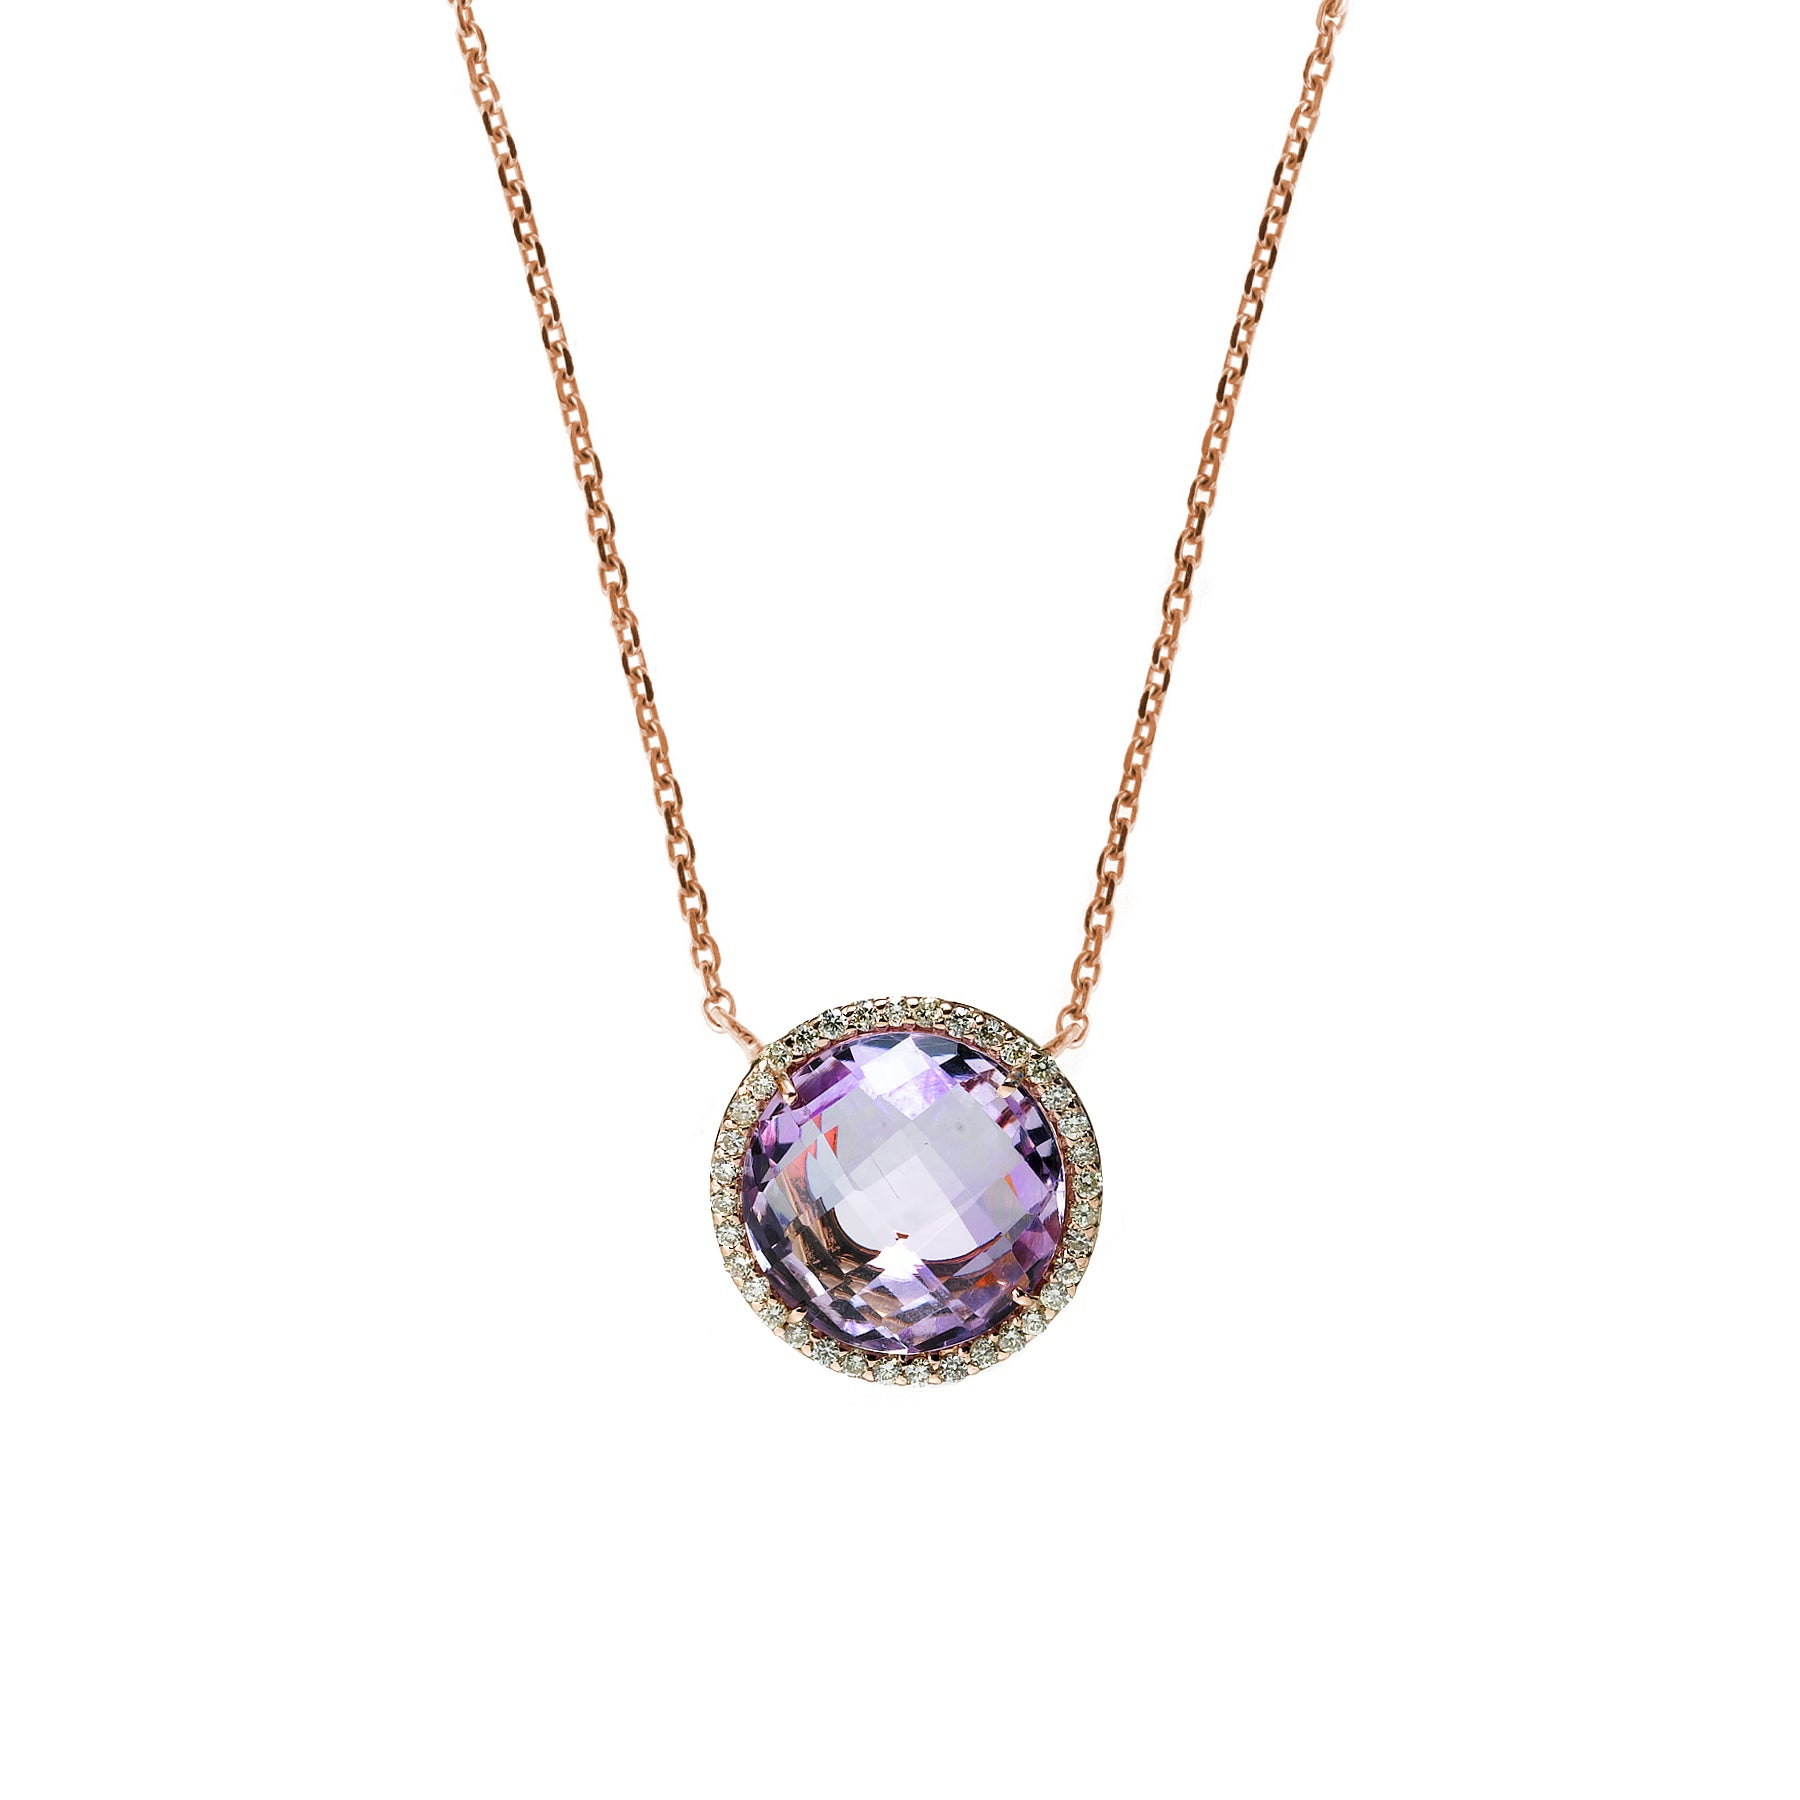 Pale Amethyst and Diamond Necklace, 14K Rose Gold